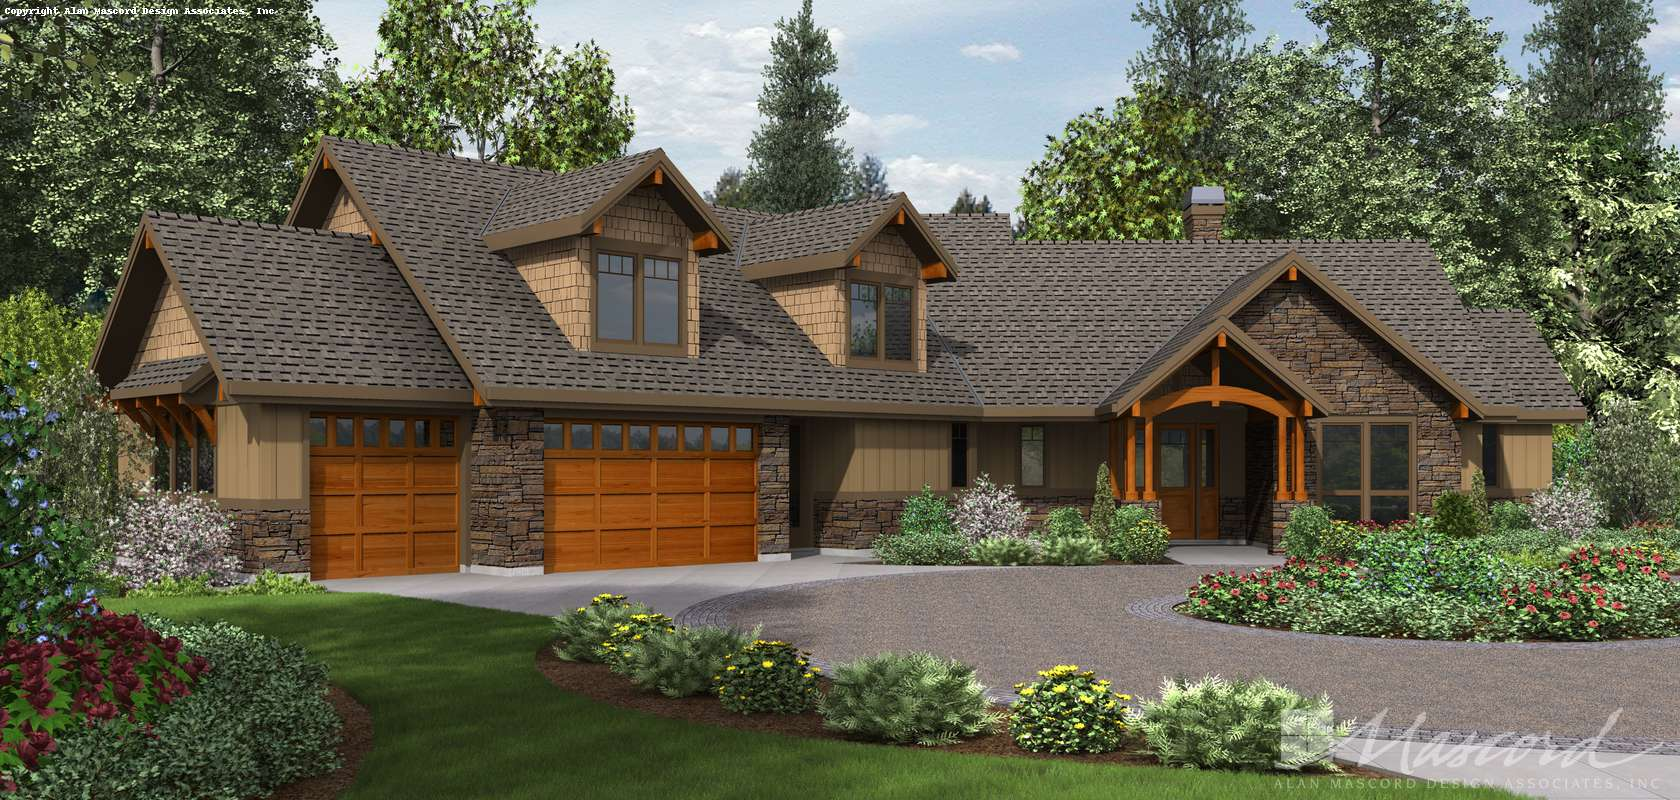 Mascord House Plan 22190: The Silverton